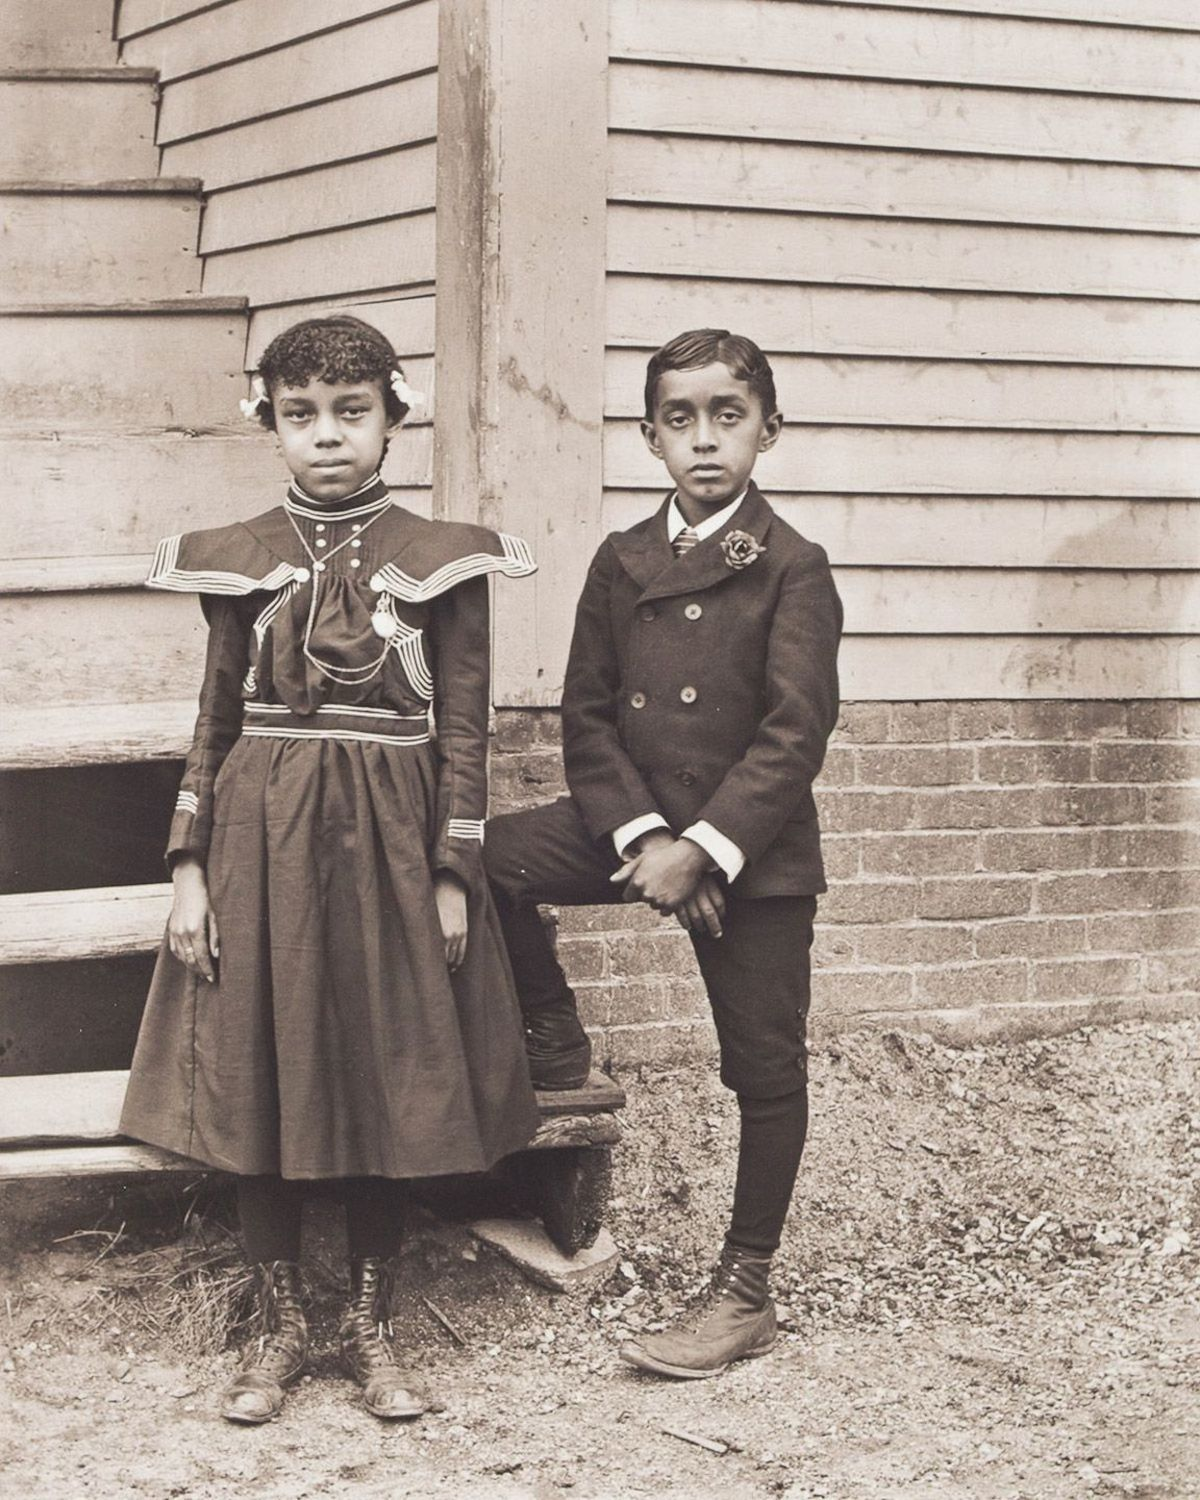 c. 1901 Portrait of Susie Idella Morris and Harry Clinton Morris. Susie and Harry Morris were the children of barber Sandy Morris, a migrant from New Orleans, and Susie Arkless Morris, of Narragansett descent. They were the great-great-grandchildren of Sampson Hazard, a Revolutionary War veteran.